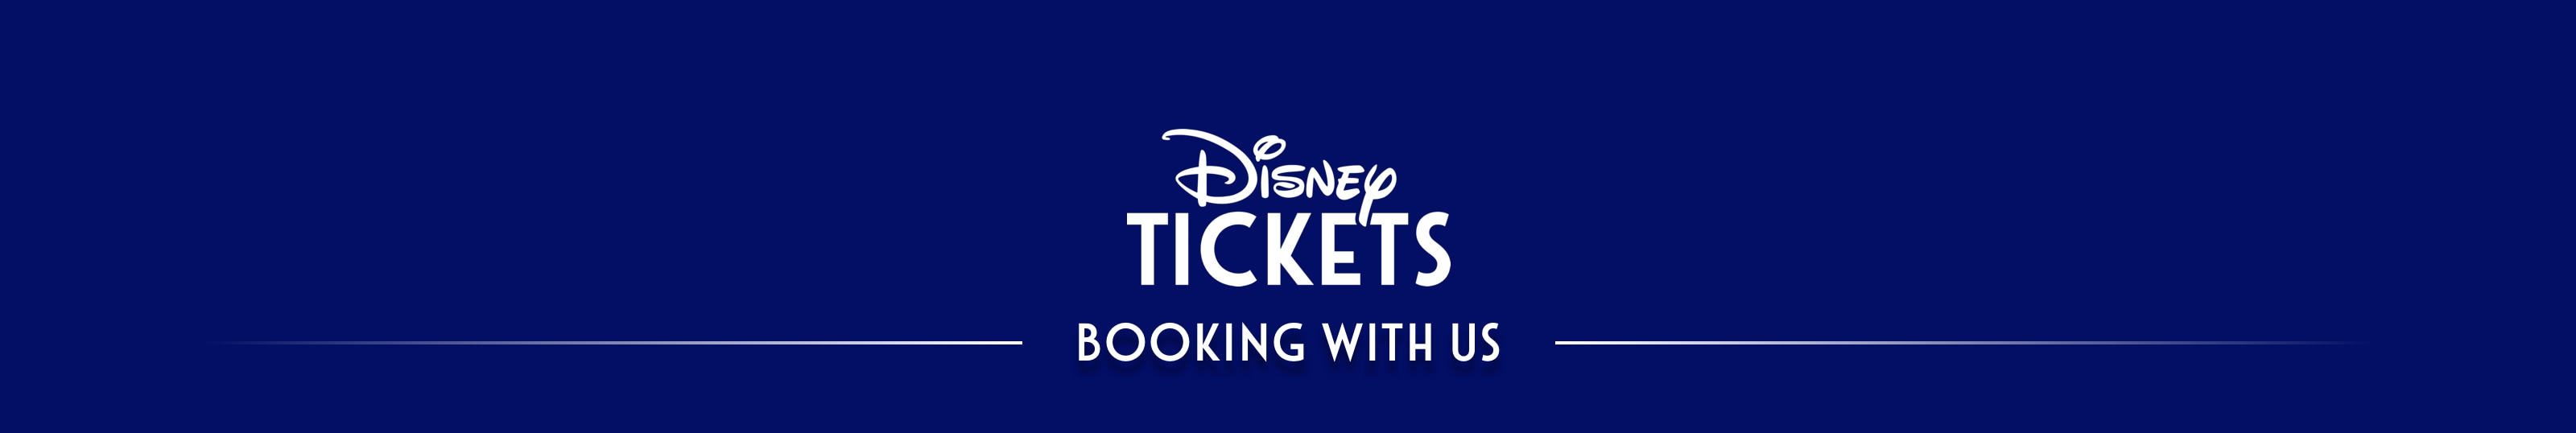 Logo of 'Disney Tickets - Booking With Us' featured on a blue background